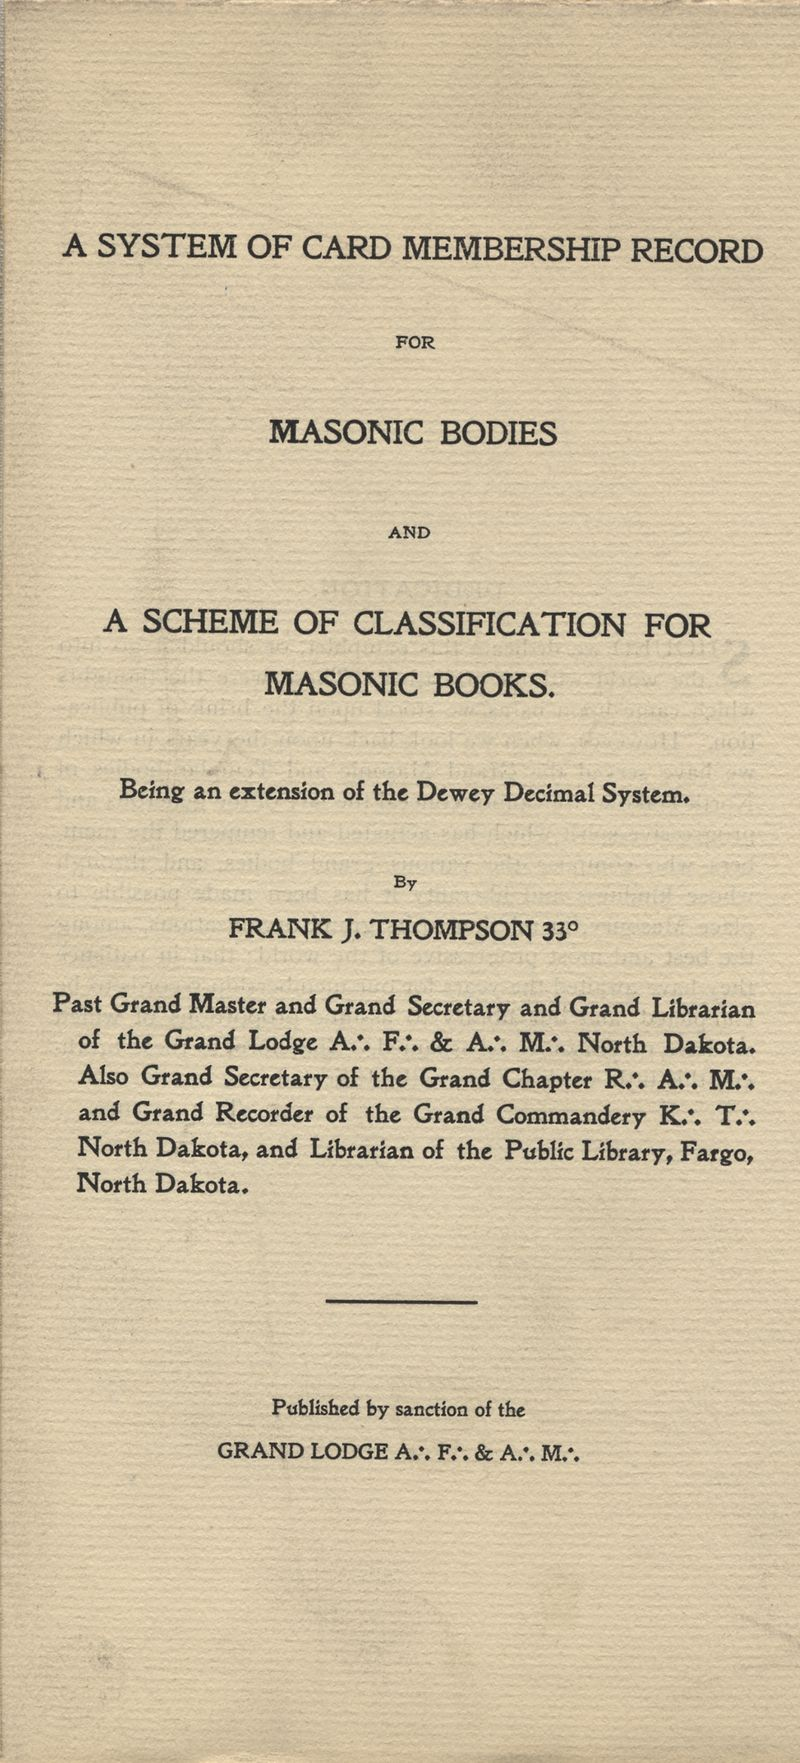 Frank_Thompson_System_of_Card_Membership